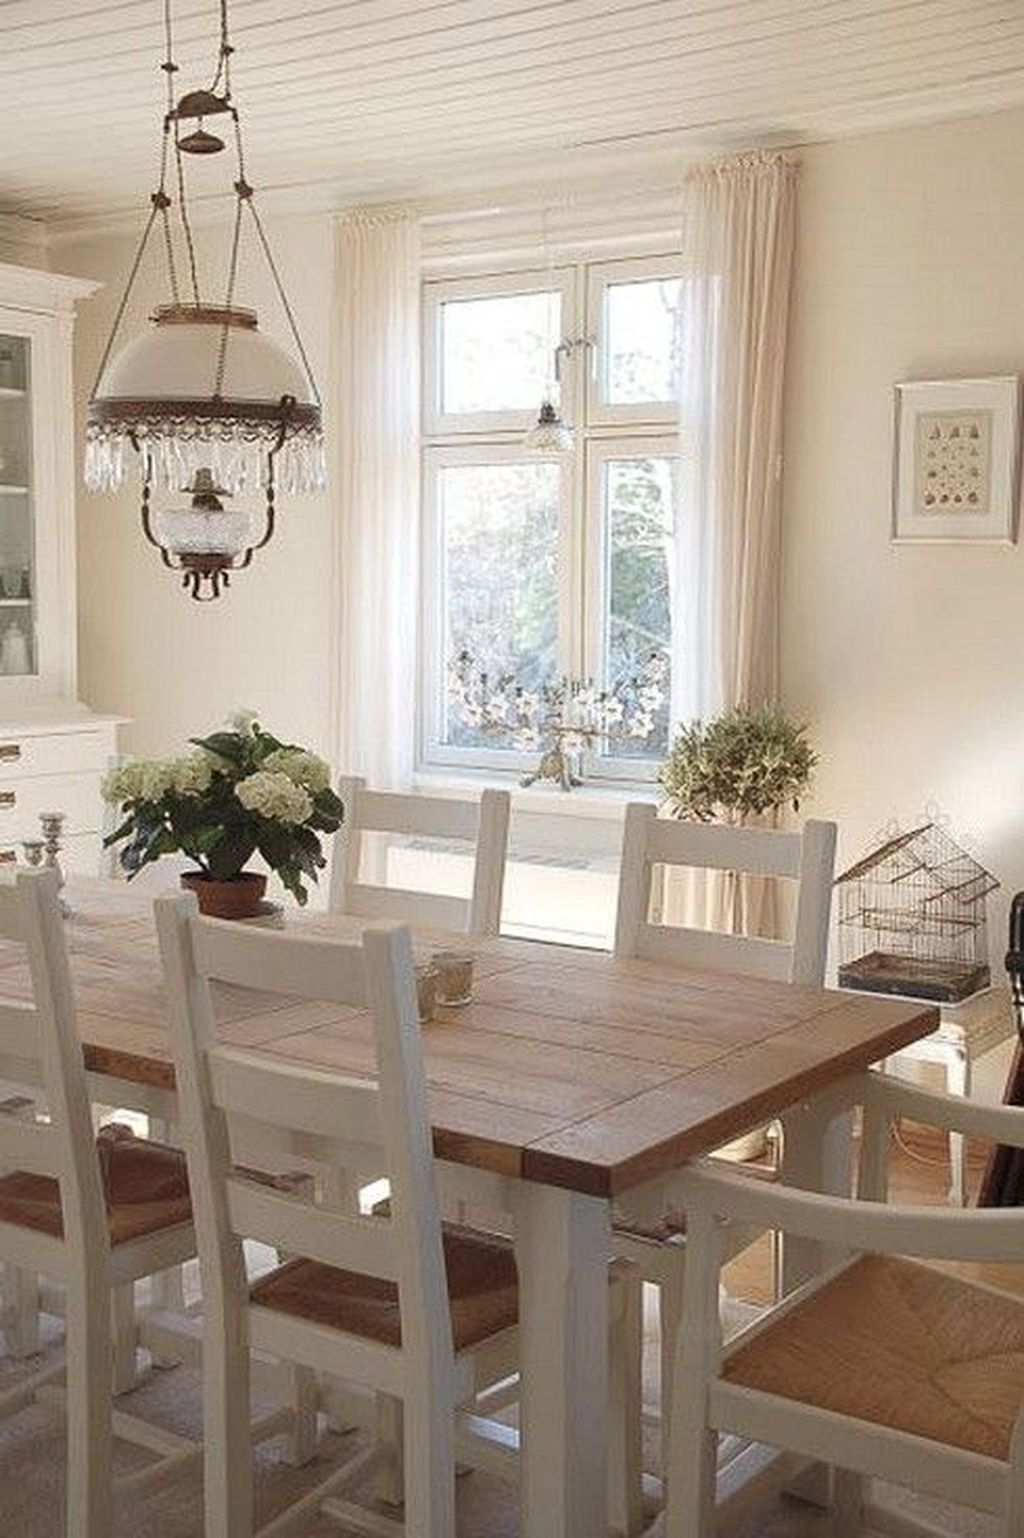 47 Cozy Country Dining Room Decorating Ideas images